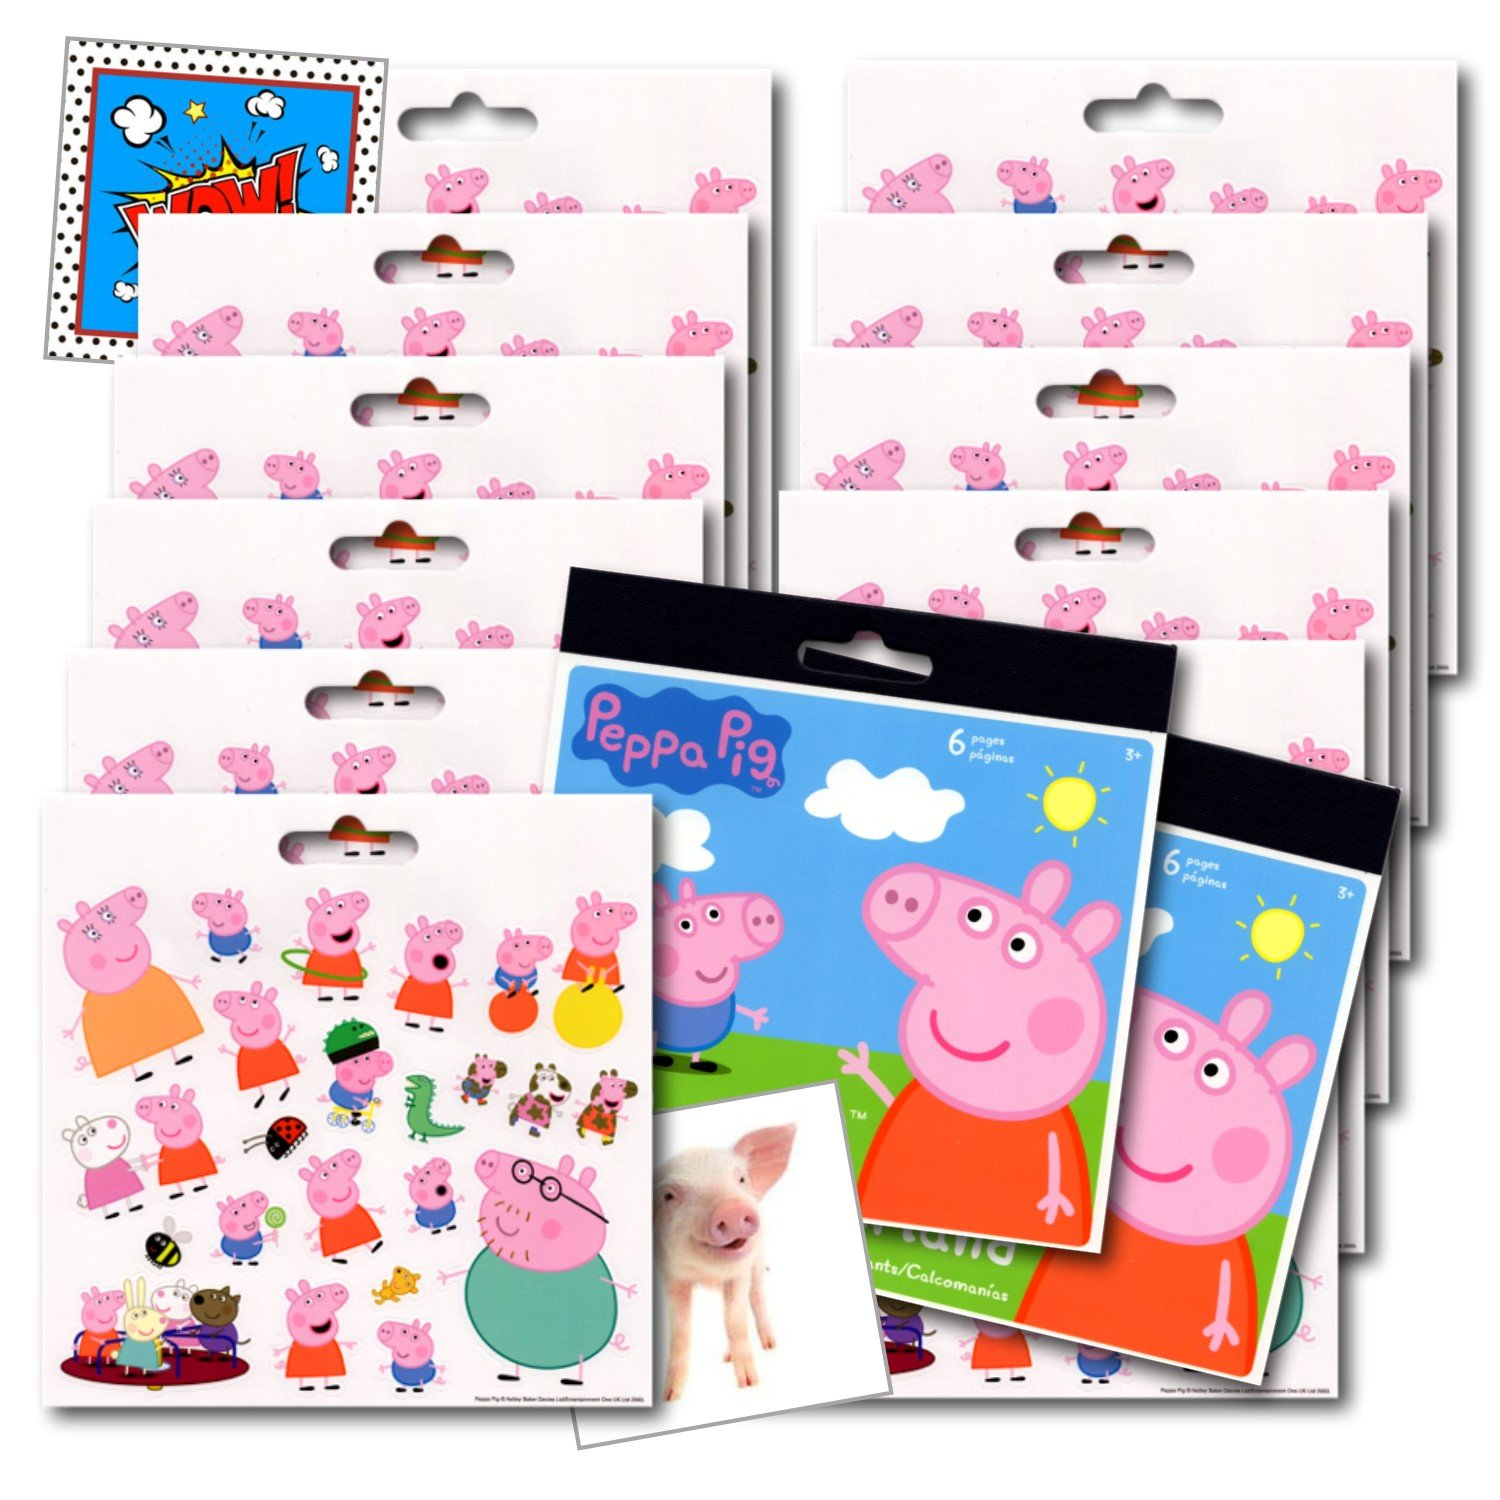 Peppa Pig Stickers Party Favors Pack 12 Sheets of Peppa and Friends Stickers 2 Specialty Separately Licensed Prize Reward Stickers